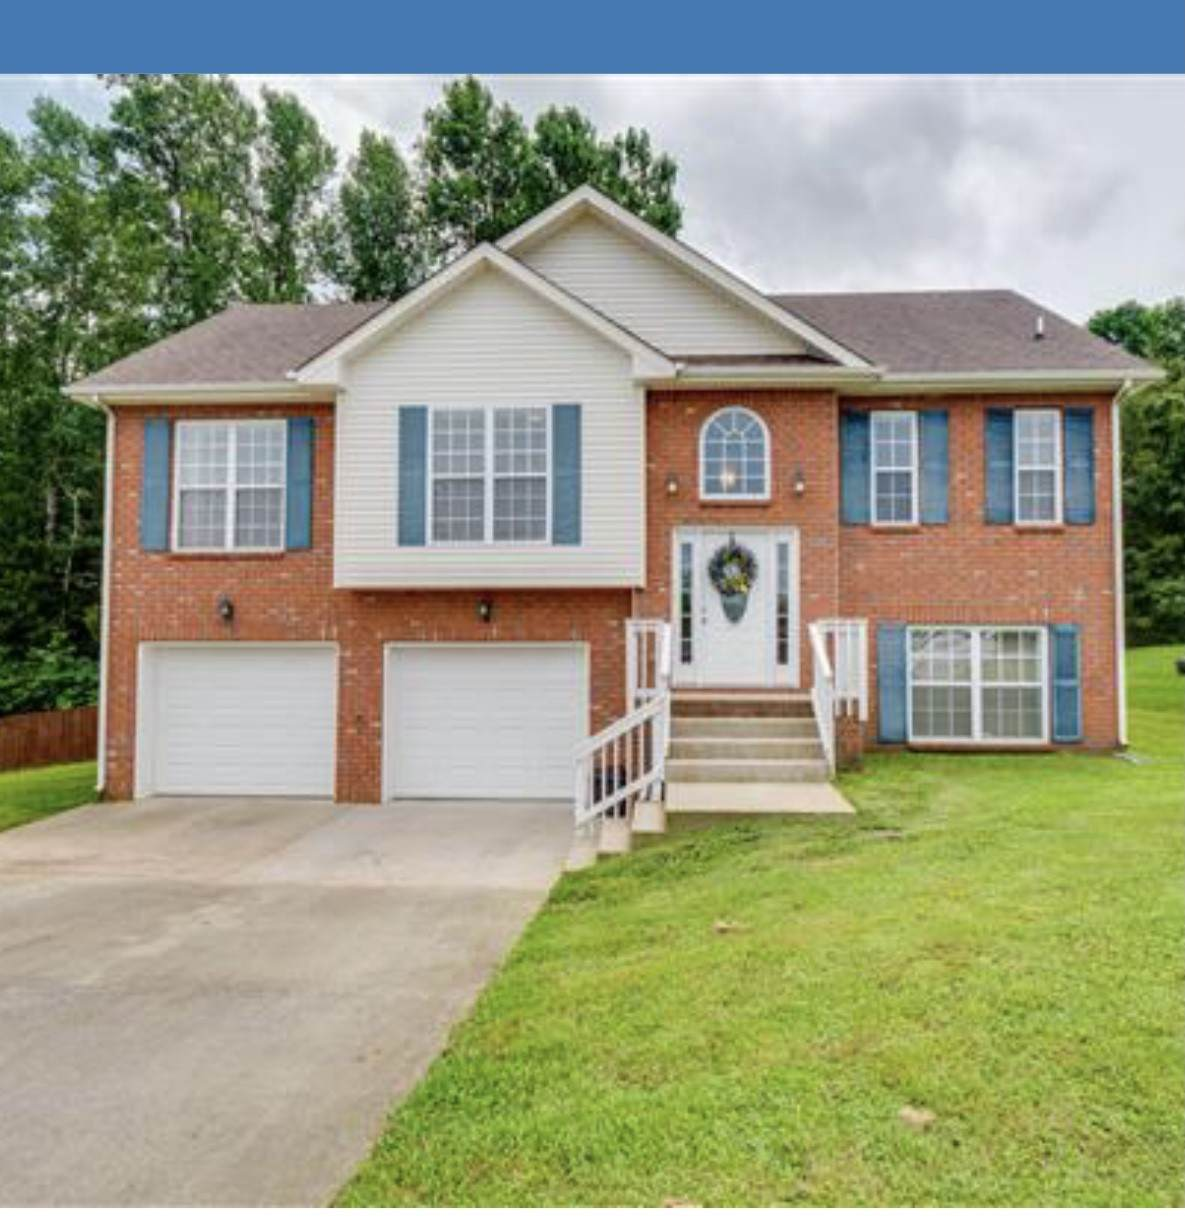 1181 Channelview Dr - Photo 1